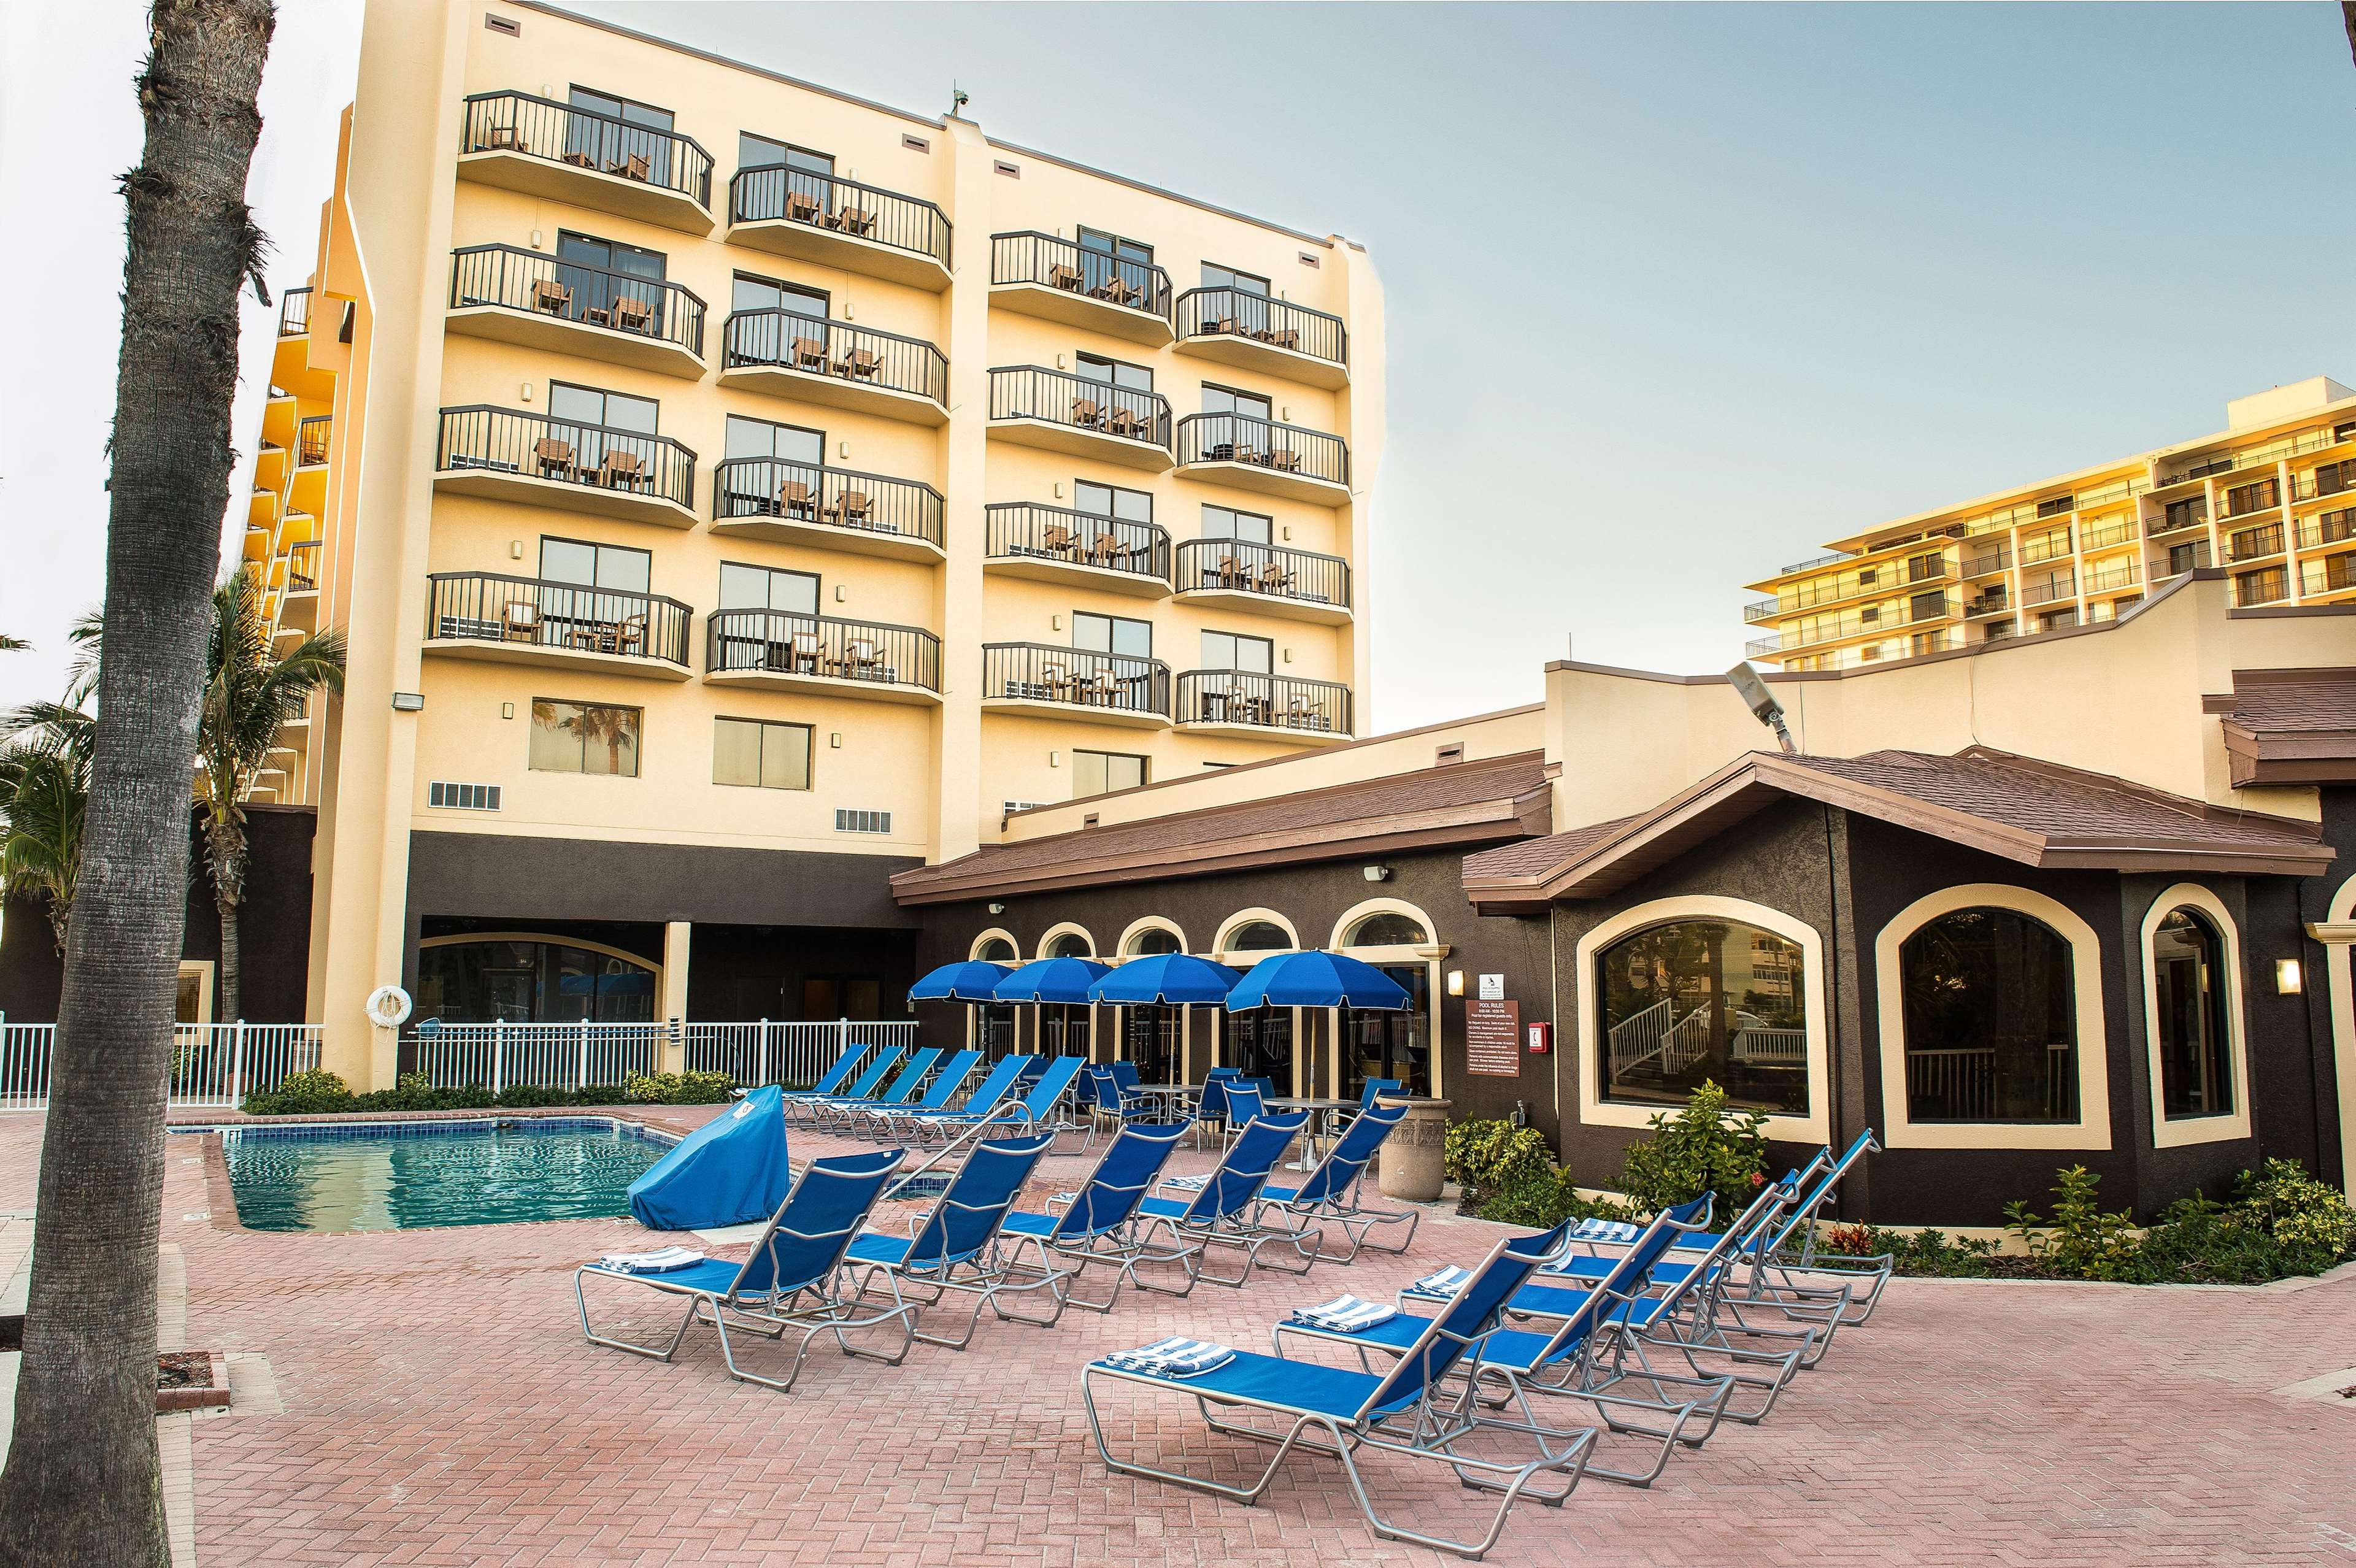 DoubleTree by Hilton Hotel Cocoa Beach Oceanfront image 41